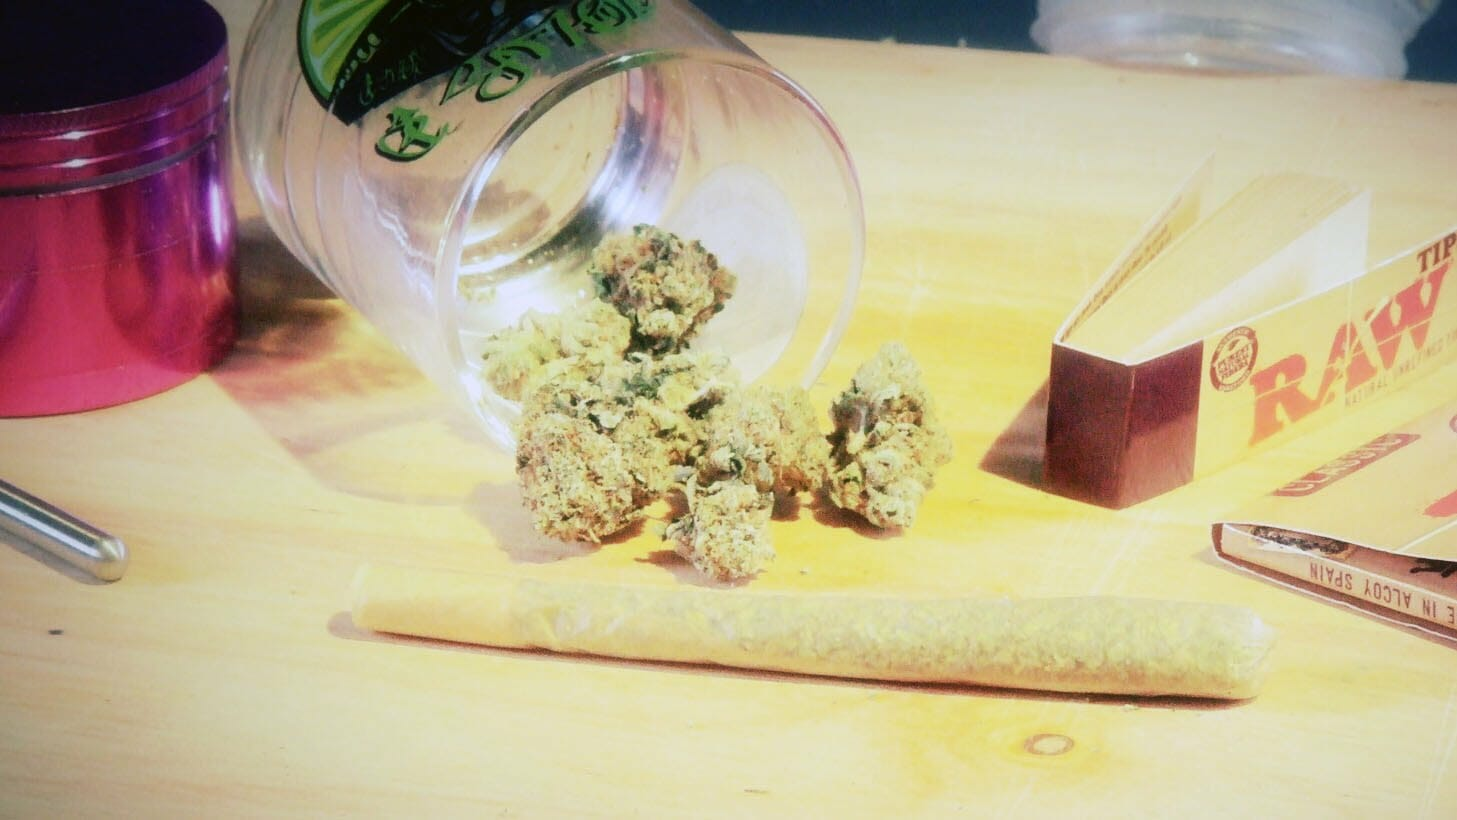 How to Roll a King Size Filter Tip Joint: Marijuana Tips & Tricks Cannabasics #3